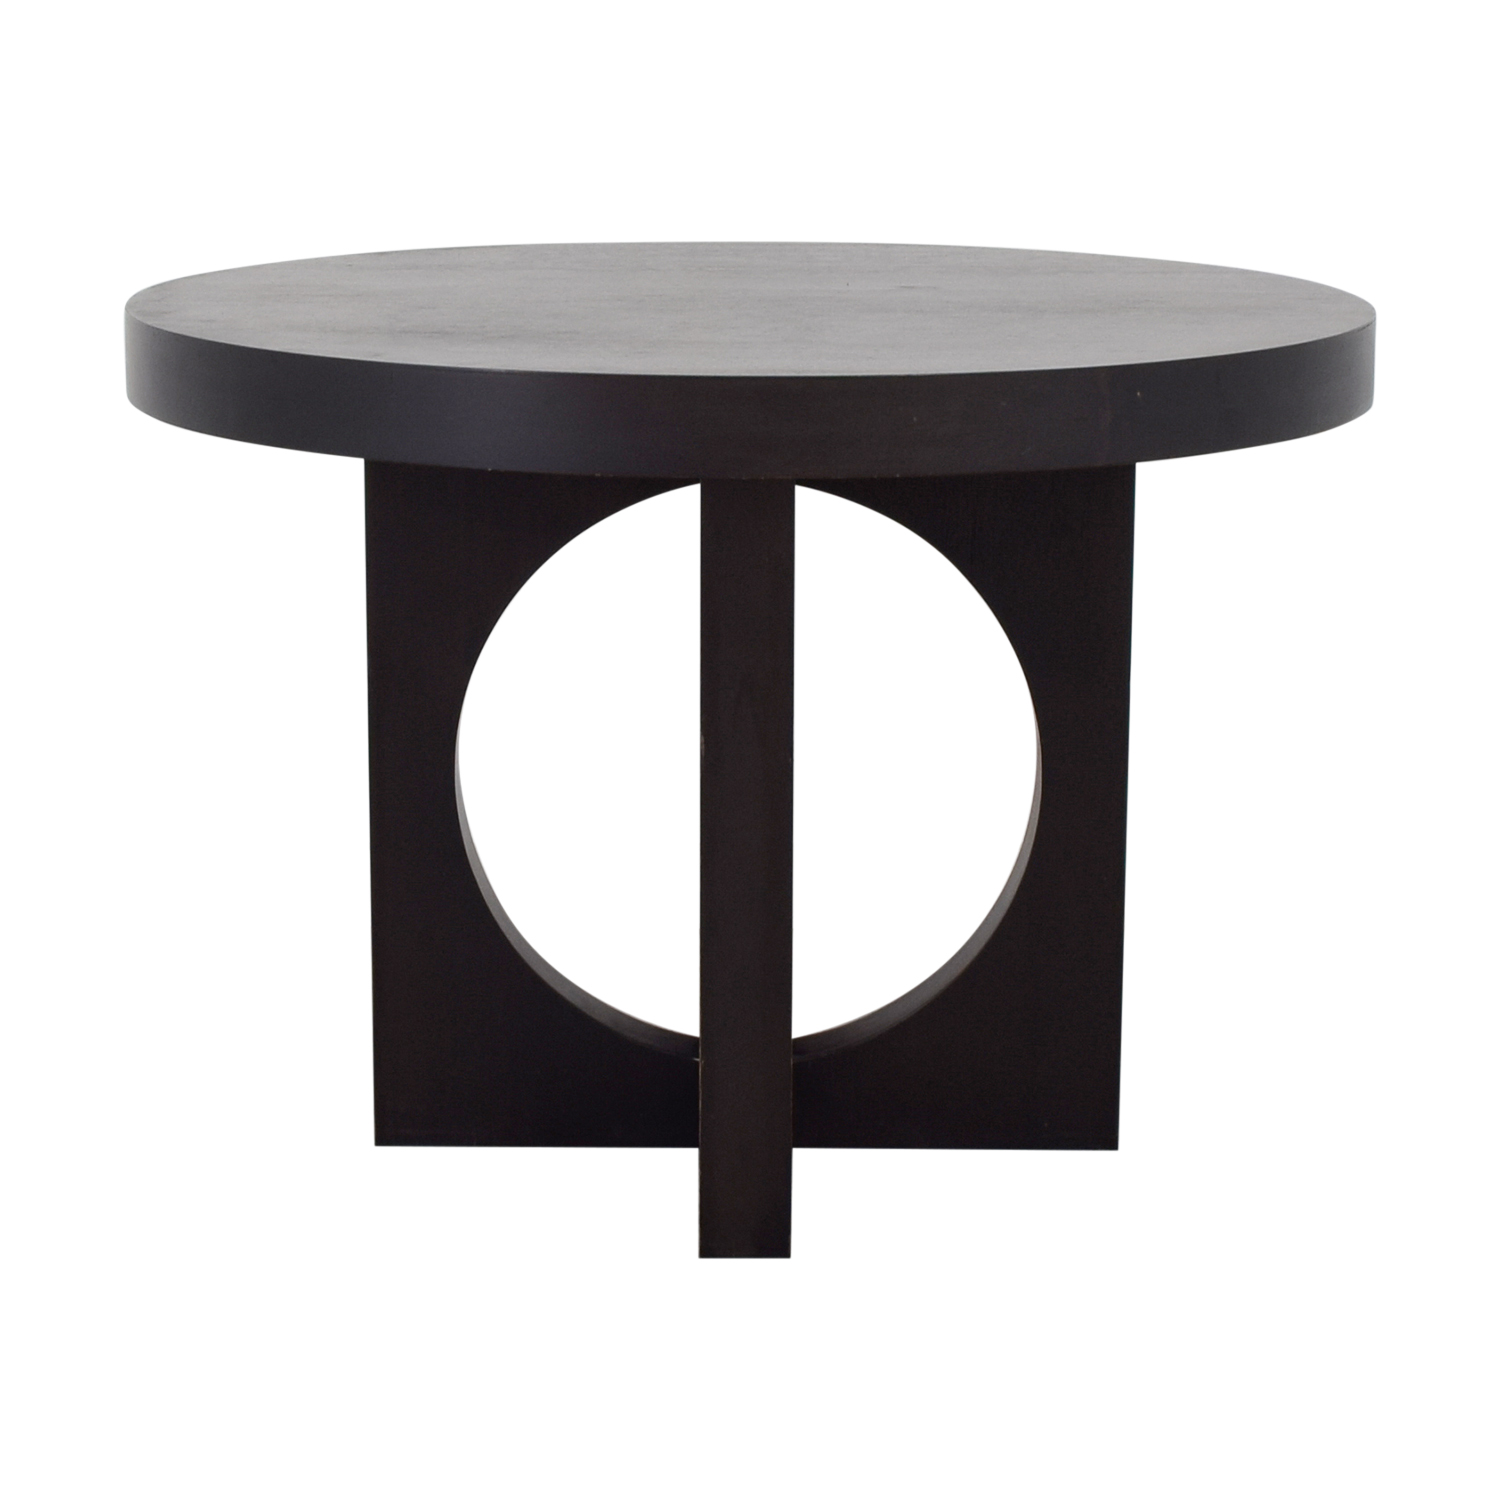 87% OFF   West Elm West Elm Black Round Dining Table / Tables